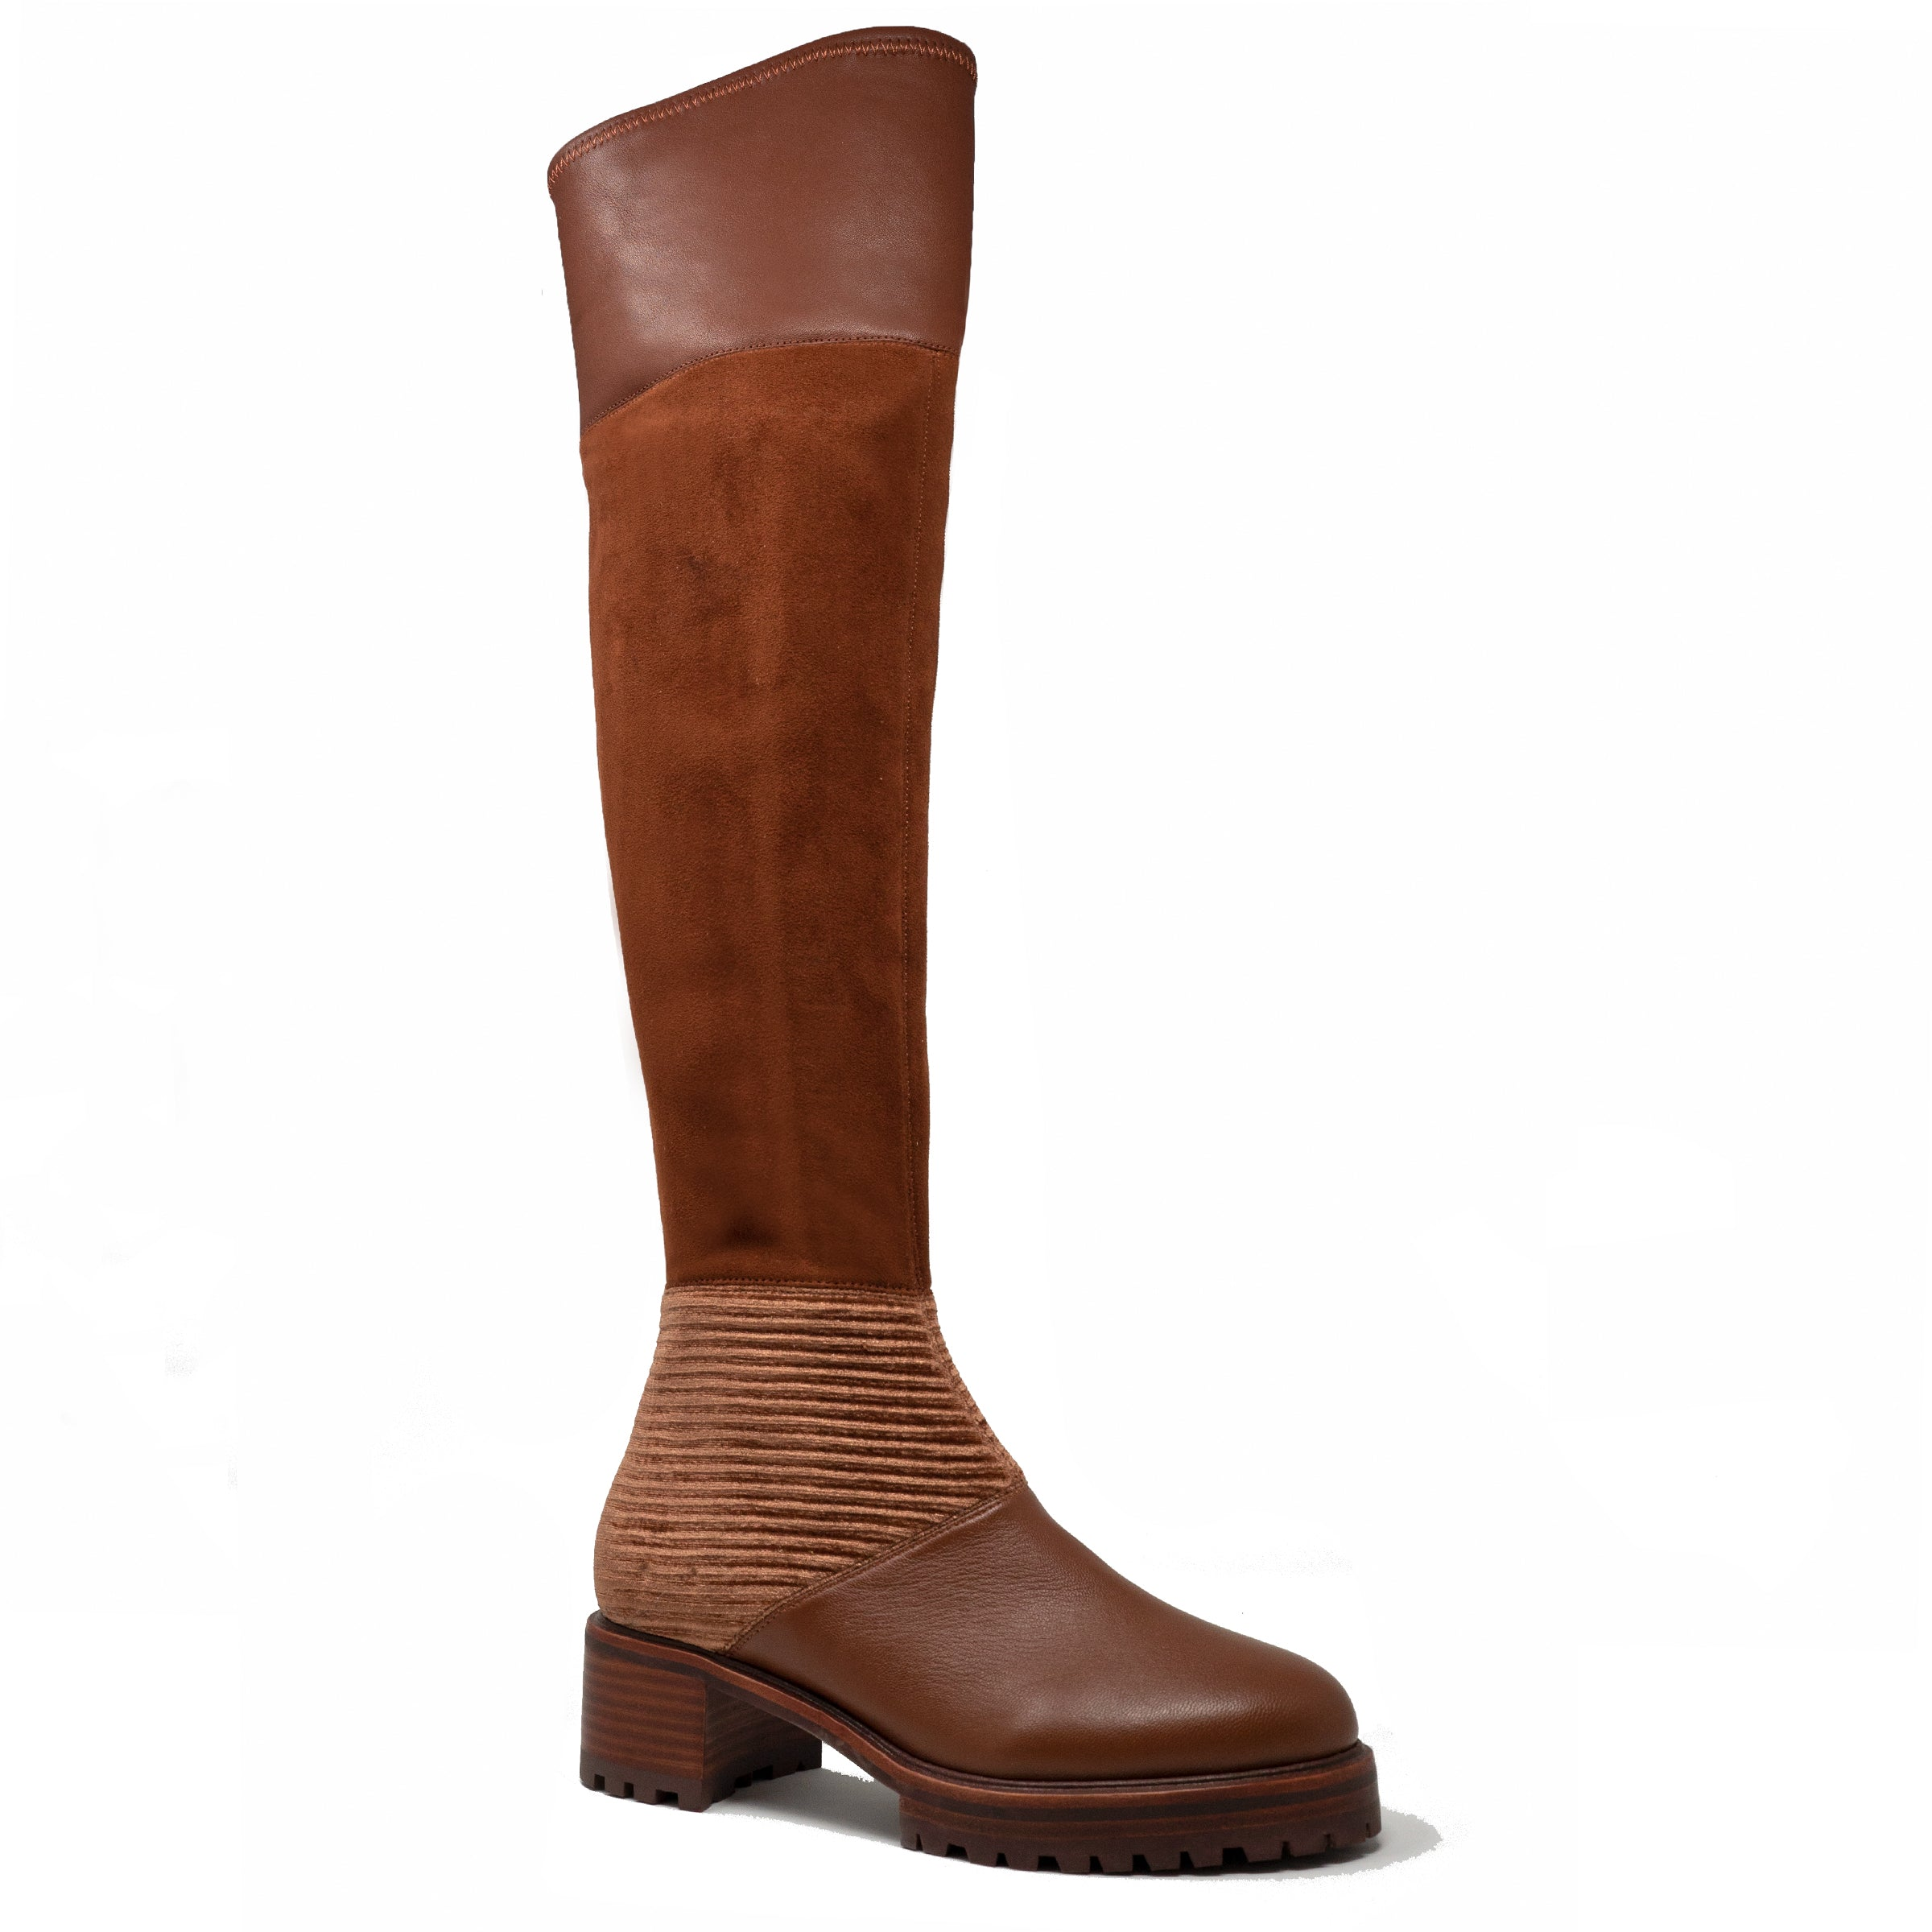 eda2f0f5d7e M4D3 Nakina Sienna Suede Lug Zip Up Over the Knee Boot – M4D3 Shoes